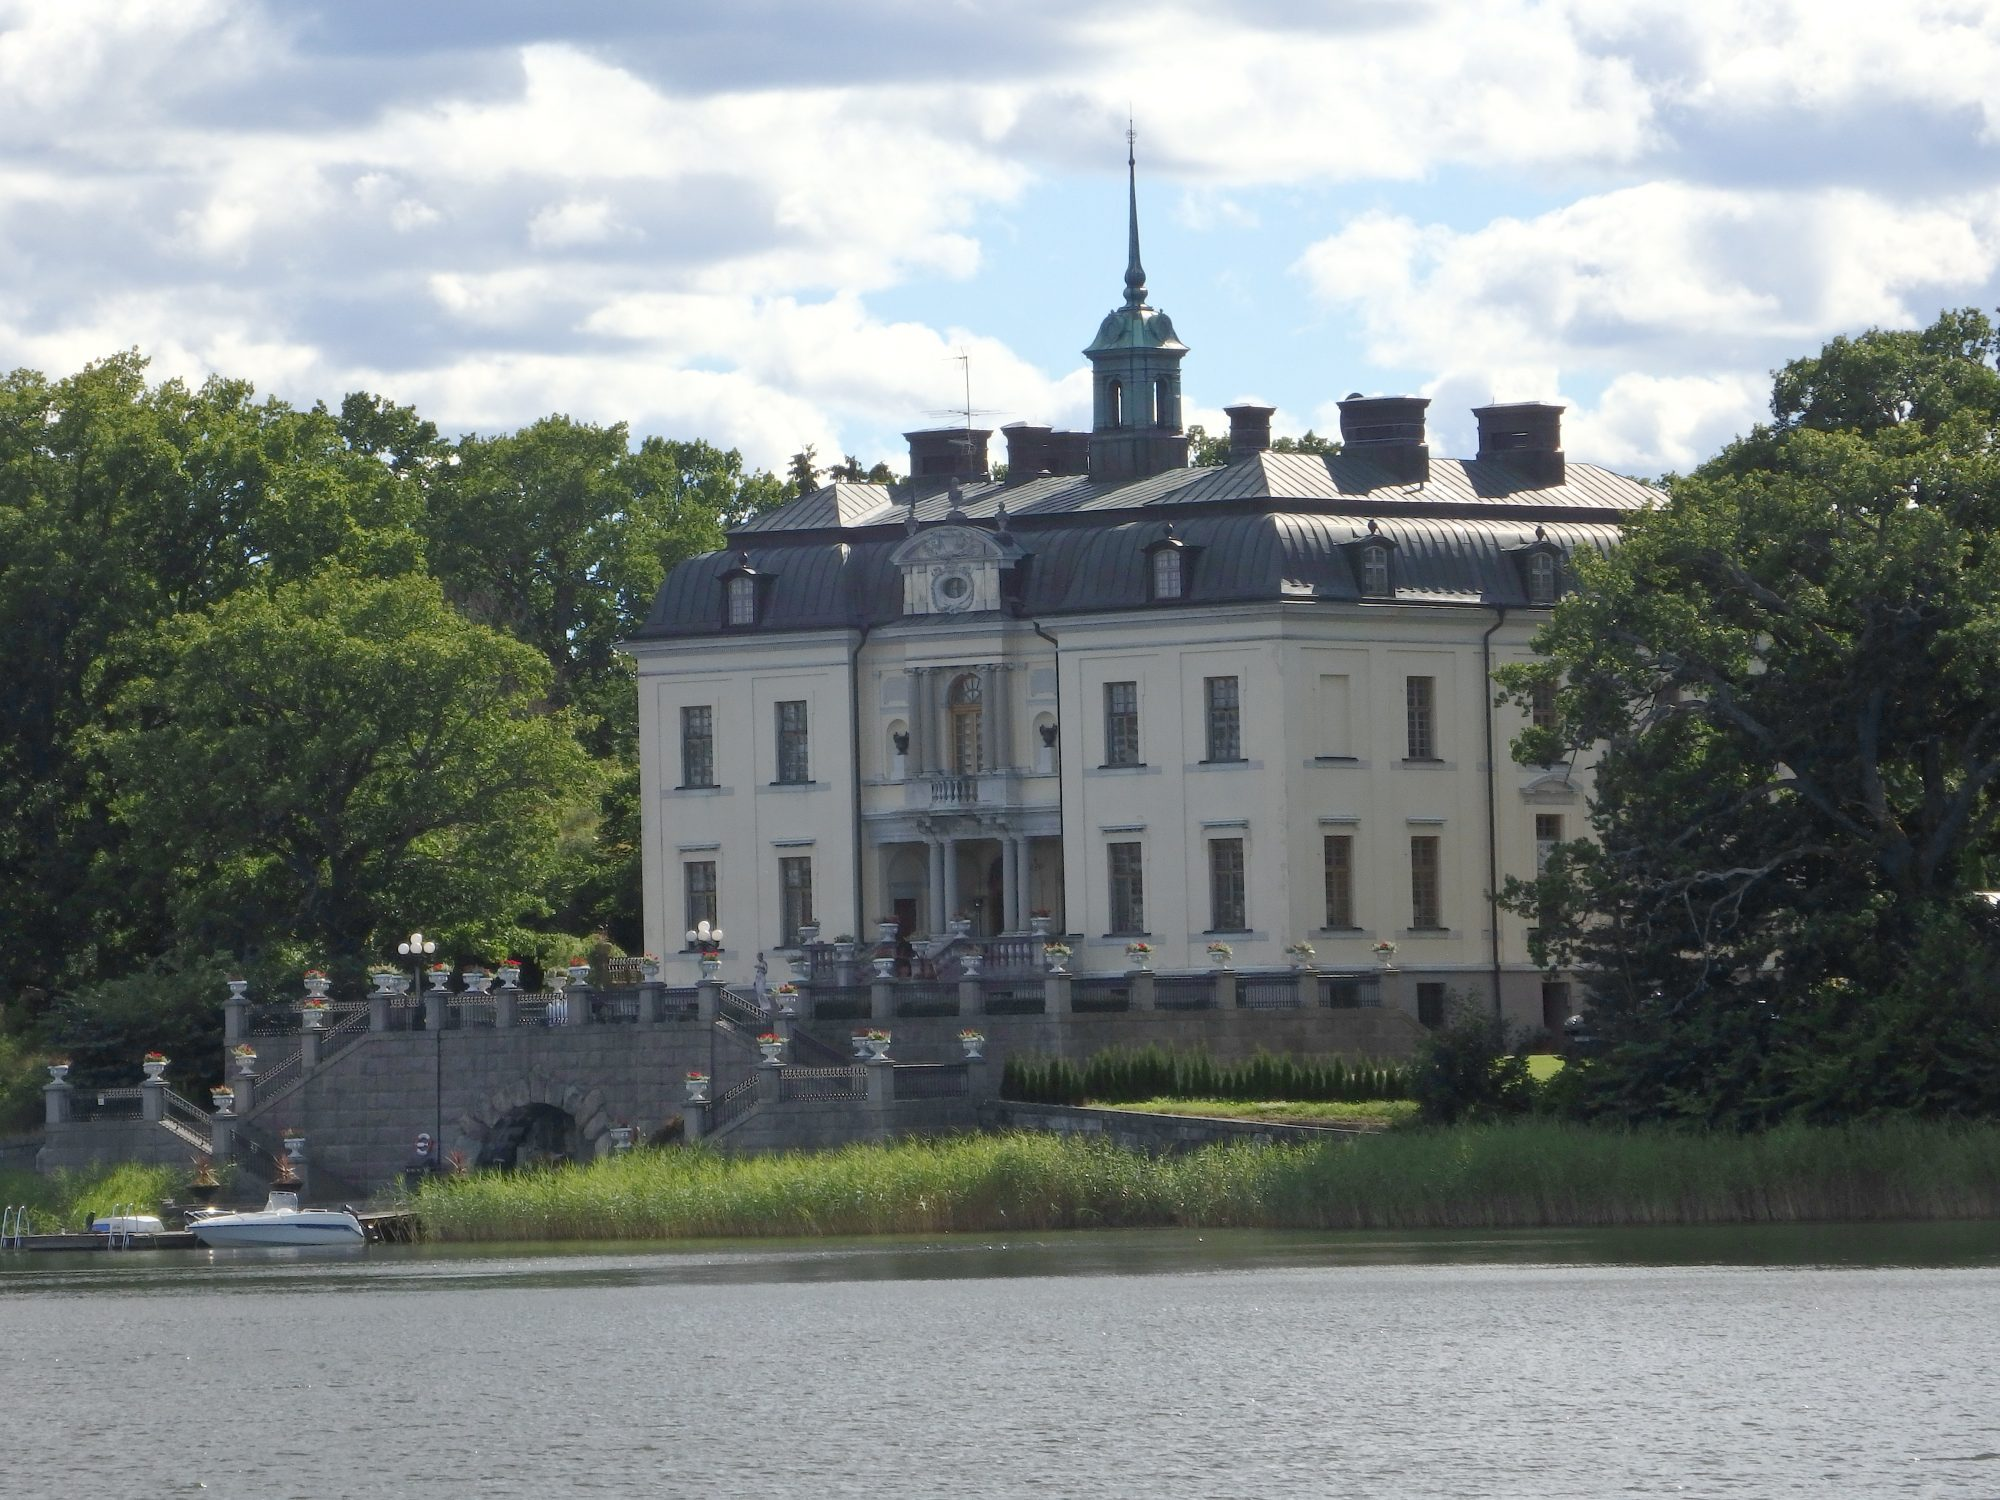 the manor house across from Gripsholm castle, Mariefred, Sweden